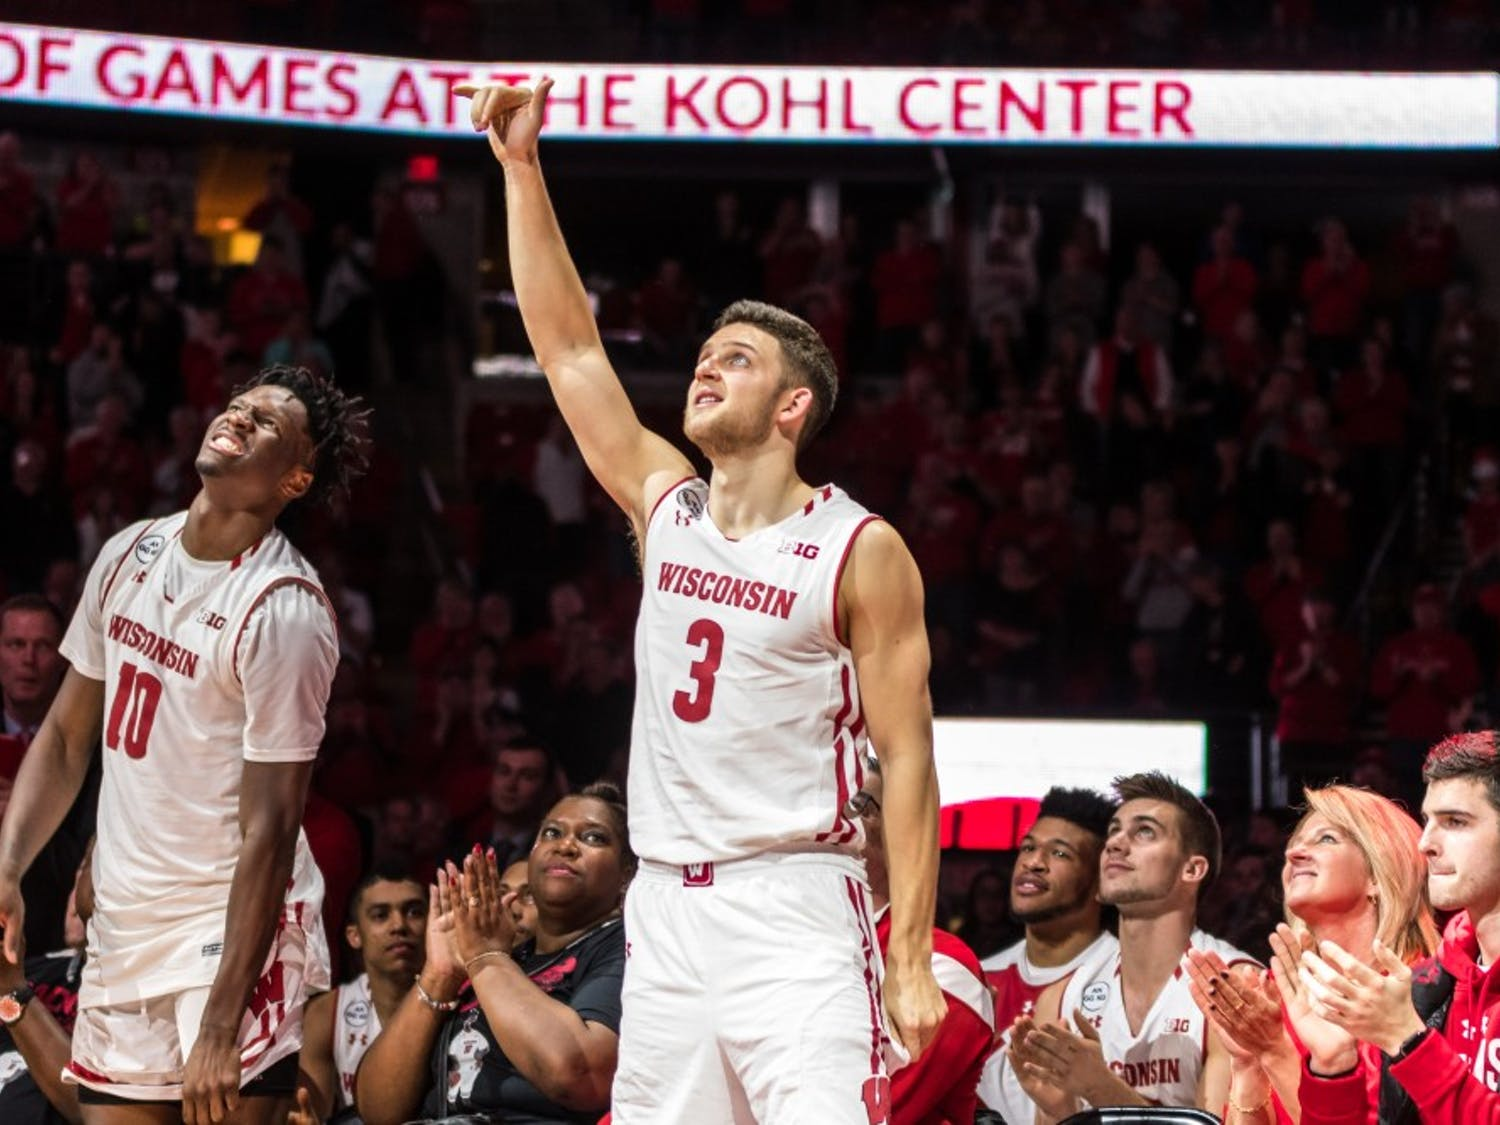 Gallery: Seniors lead Badgers to key victory in last appearance on Kohl Center floor